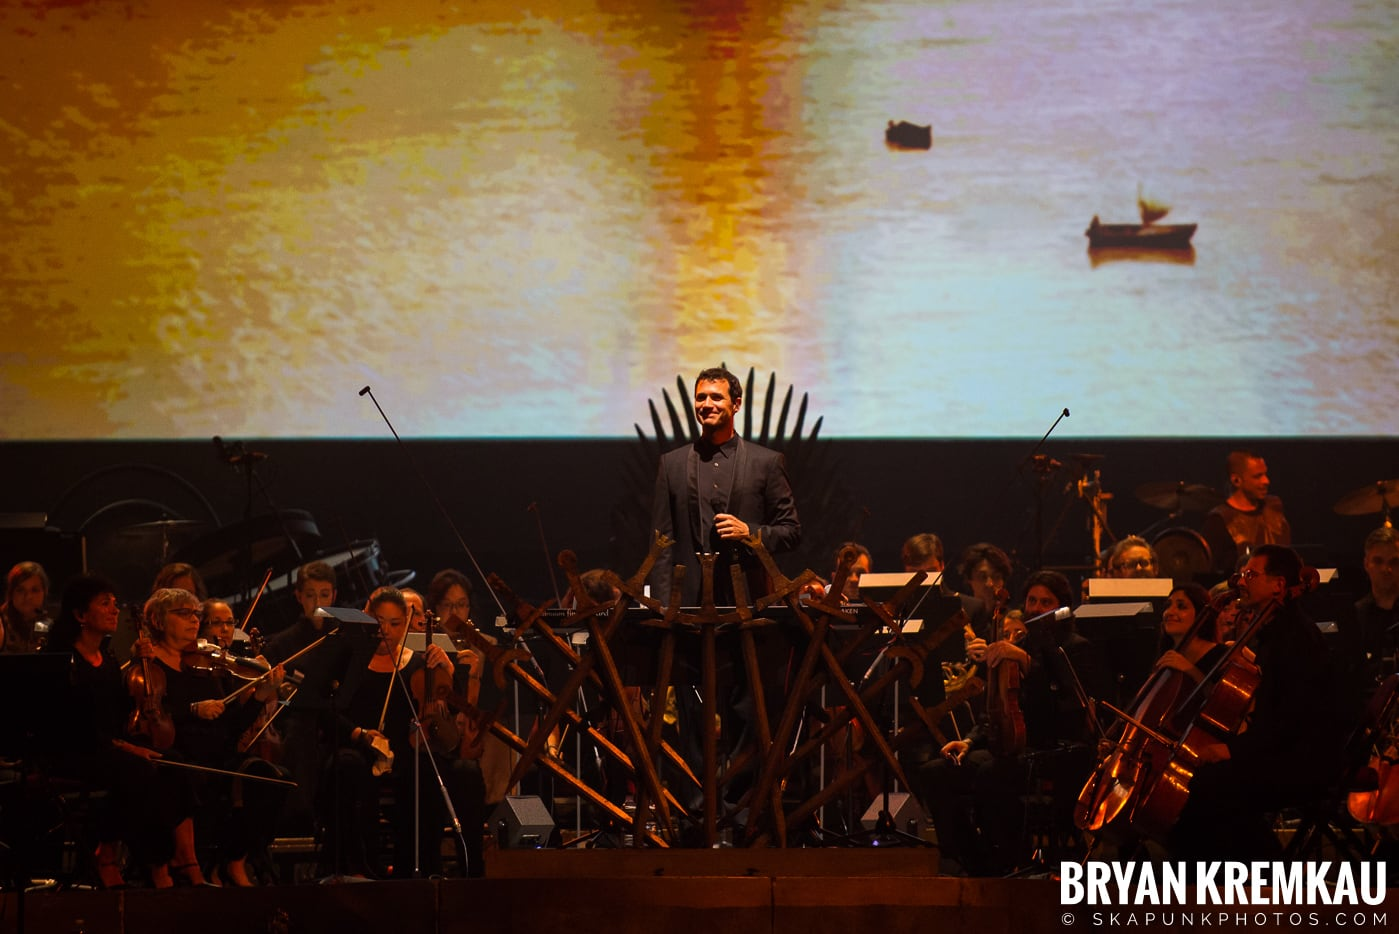 Game of Thrones Live Experience @ Prudential Center, Newark, NJ - 9.26.18 (29)